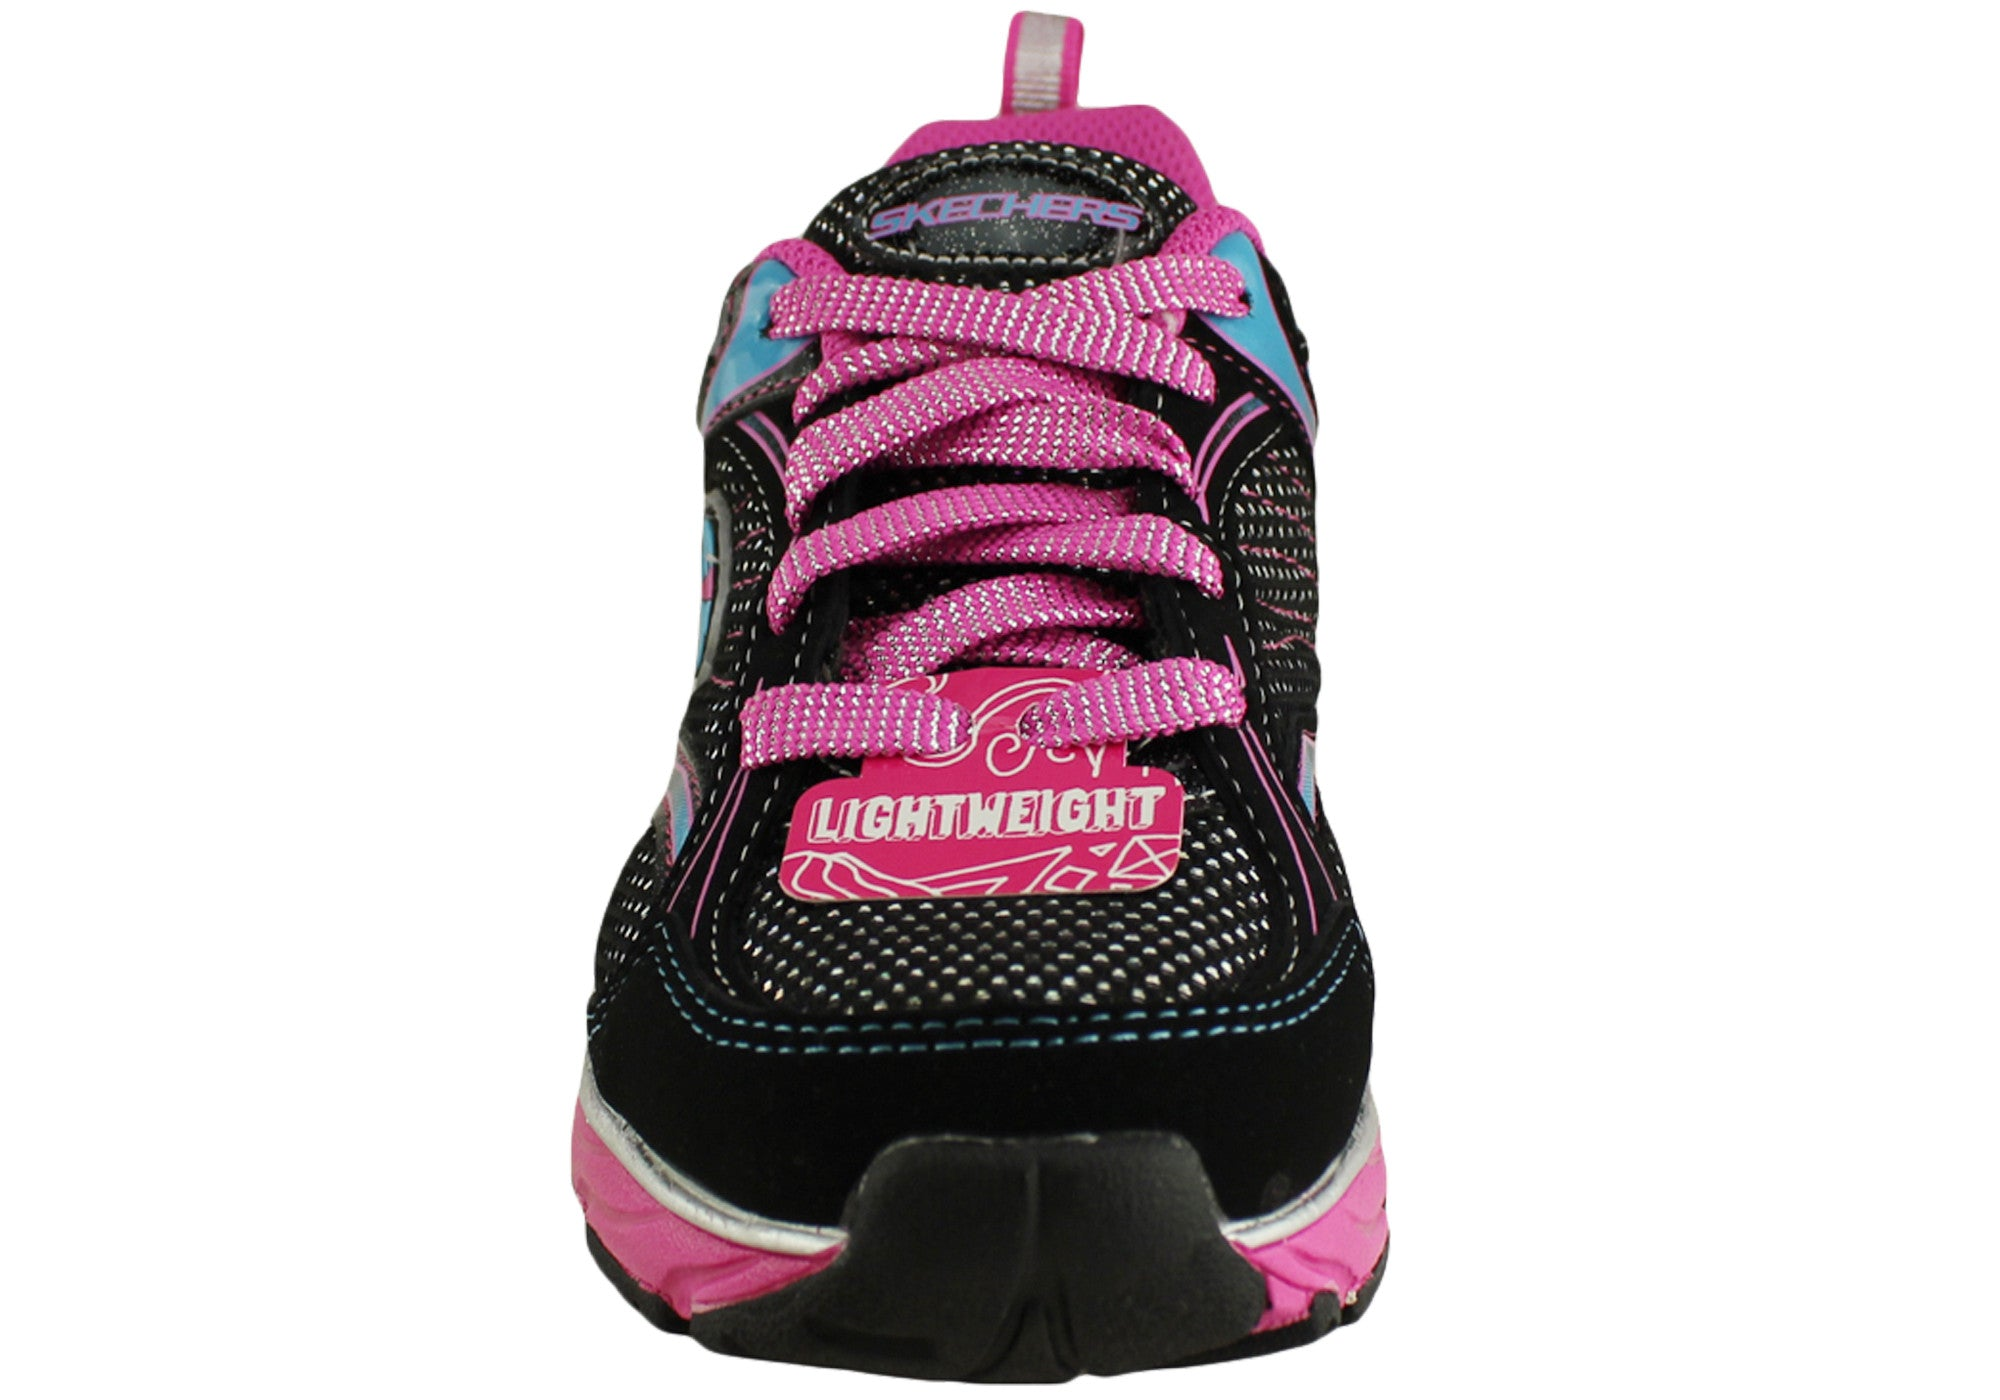 Skechers Lite Swirlz Kids Sports/Casual Shoes